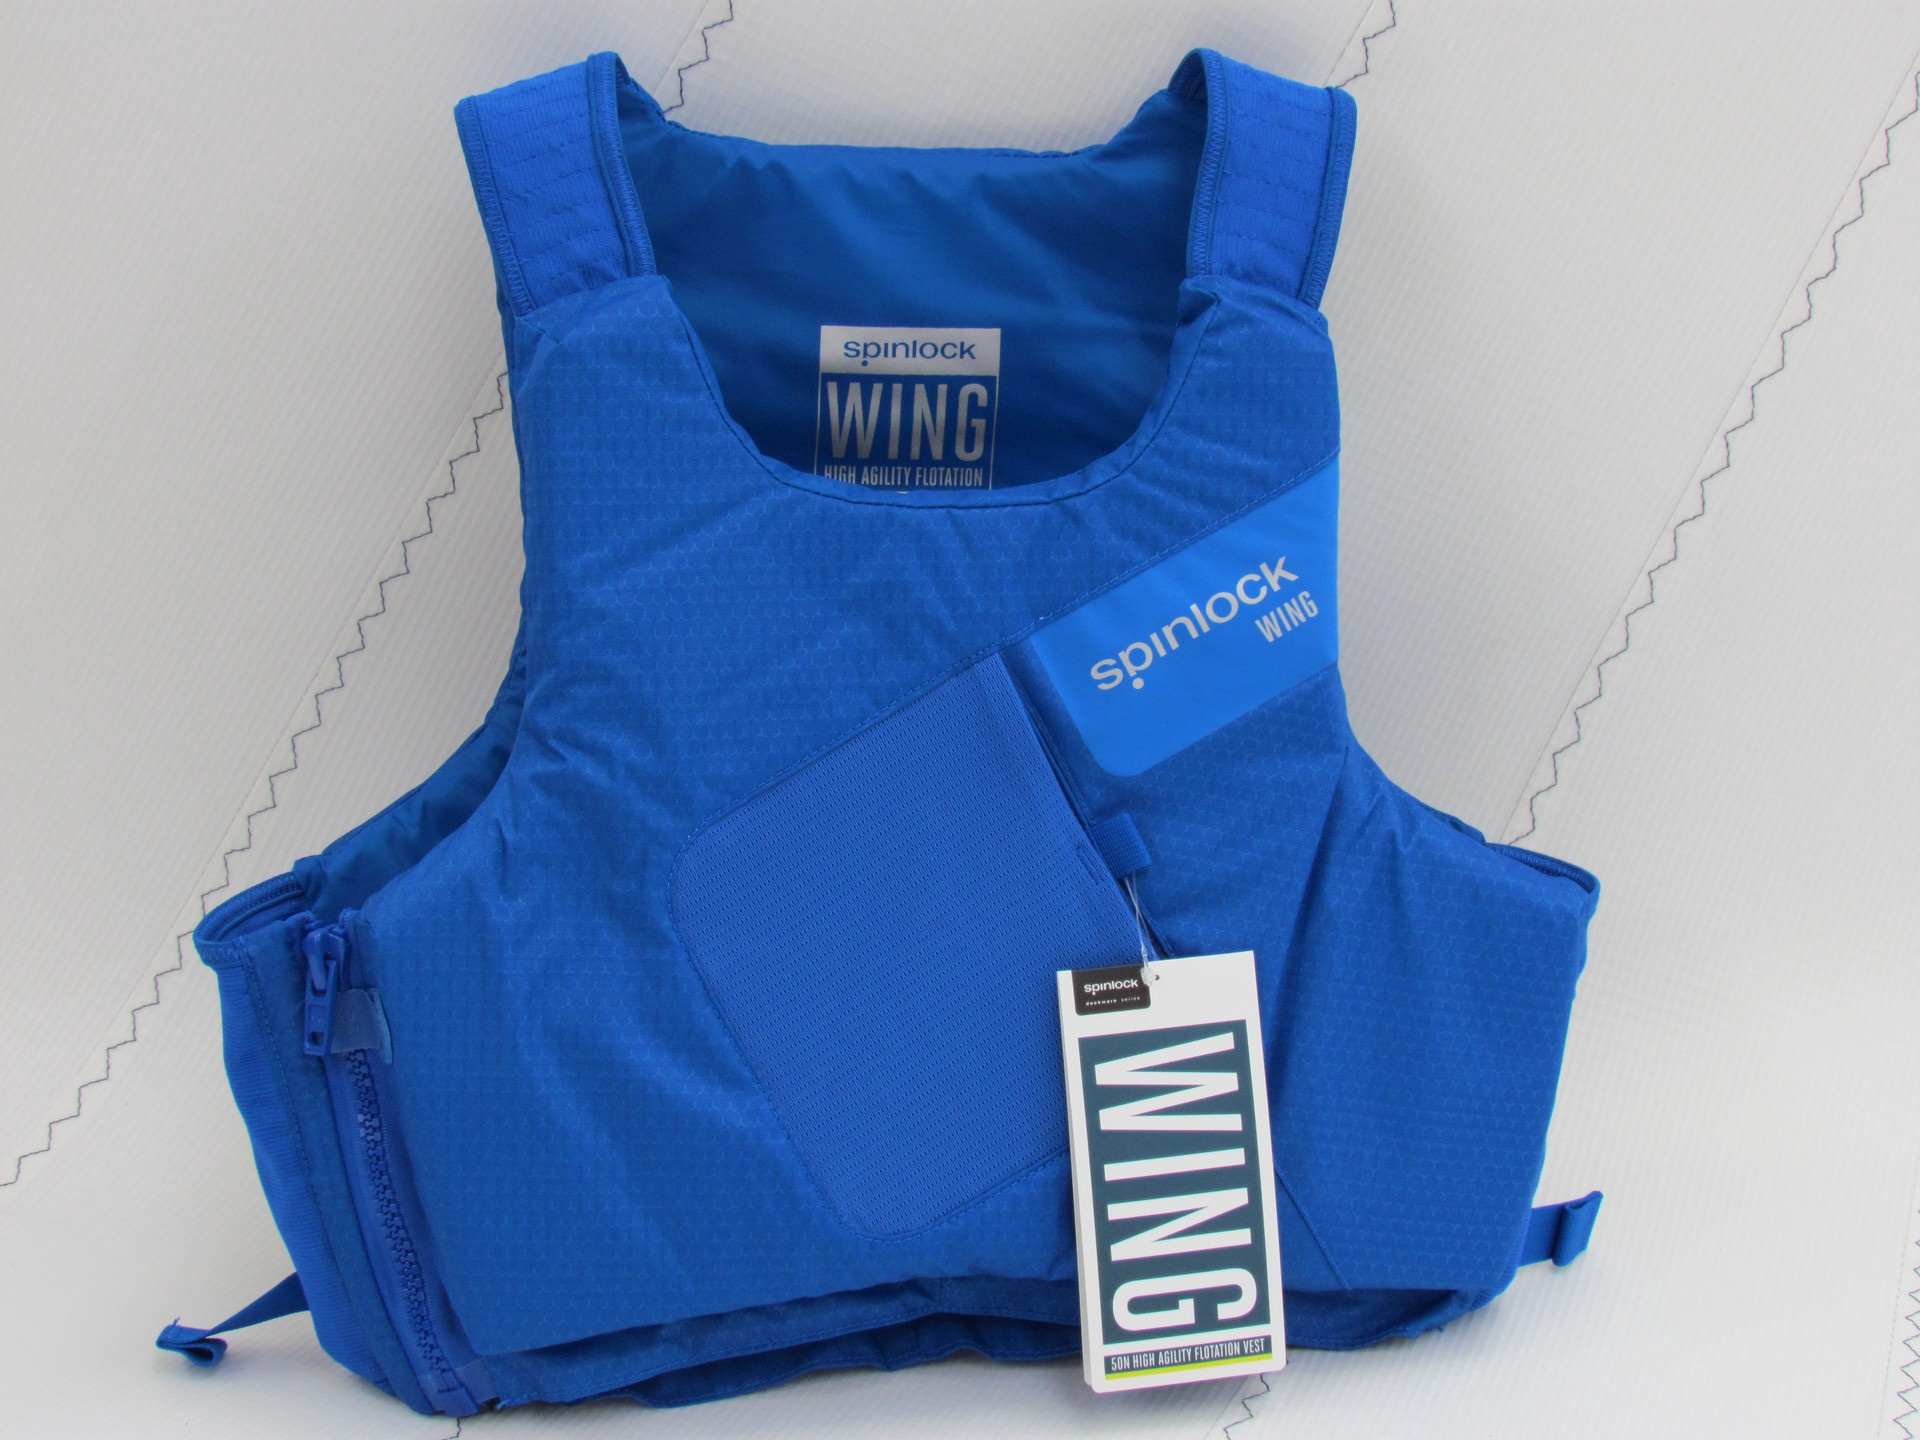 Spinlock Wing Side Zip PFD Cobalt Blue Size: Large